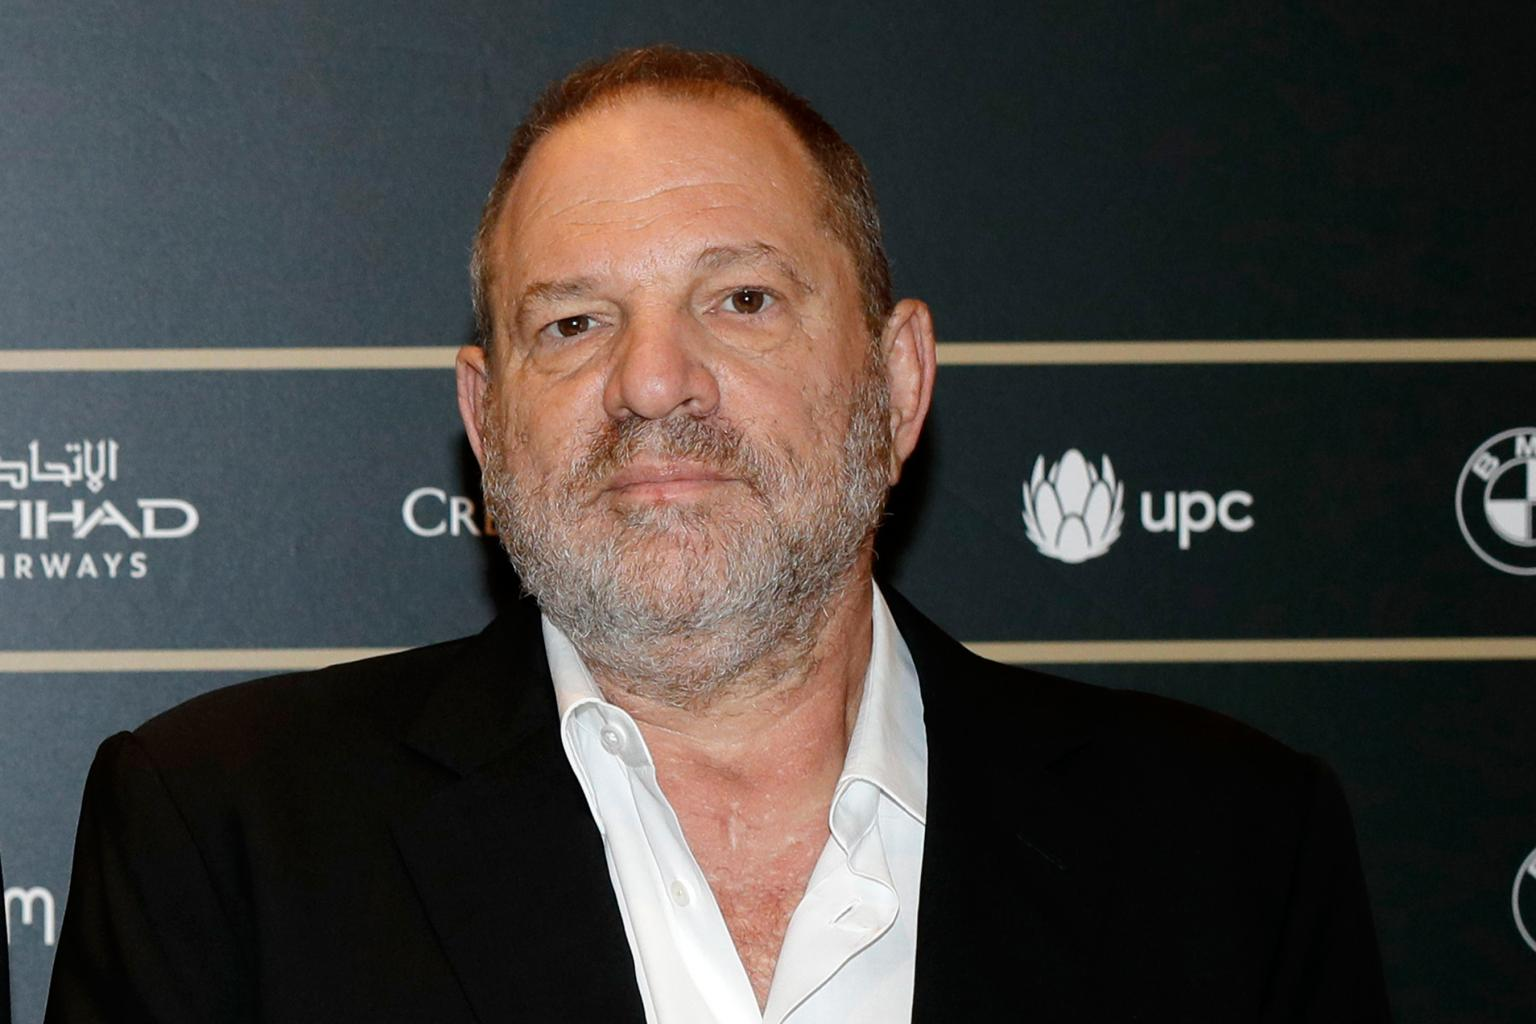 Weinstein Company Hit with Subpoena by NY Attorney General Over Potential Civil Rights Violations